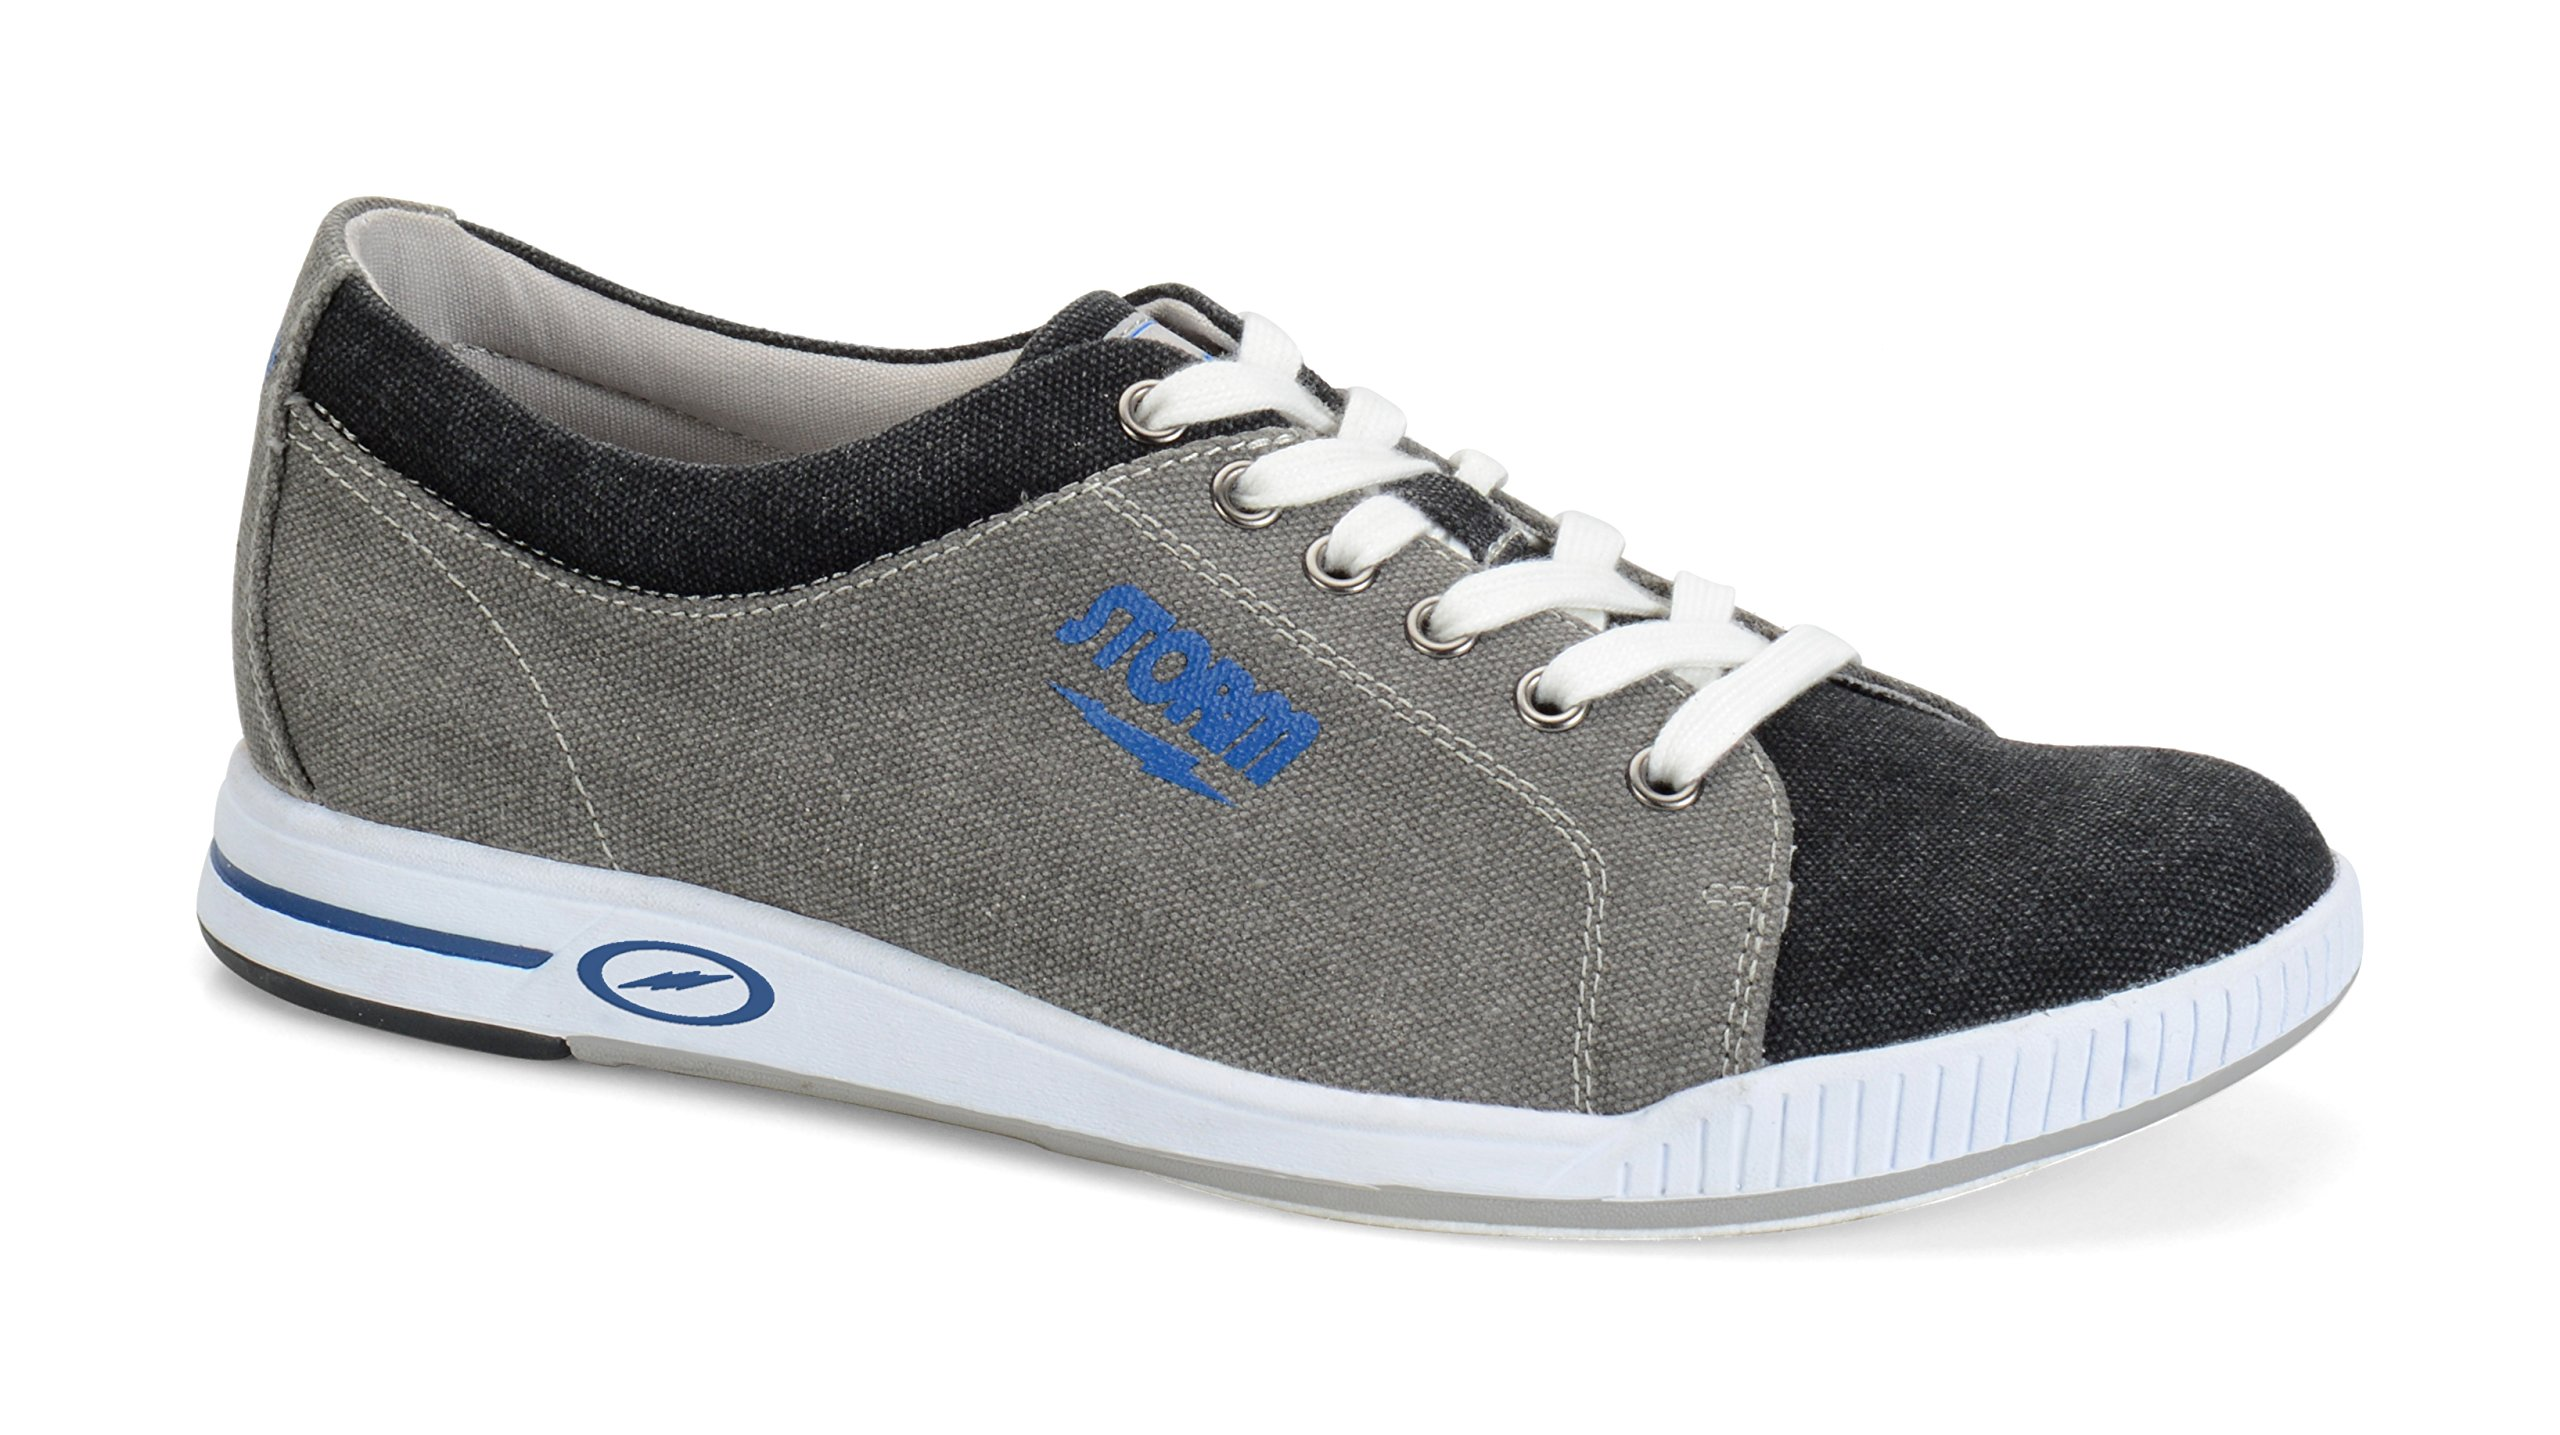 Storm Gust Bowling Shoes, Grey/Black/Blue, 10.5 by Storm